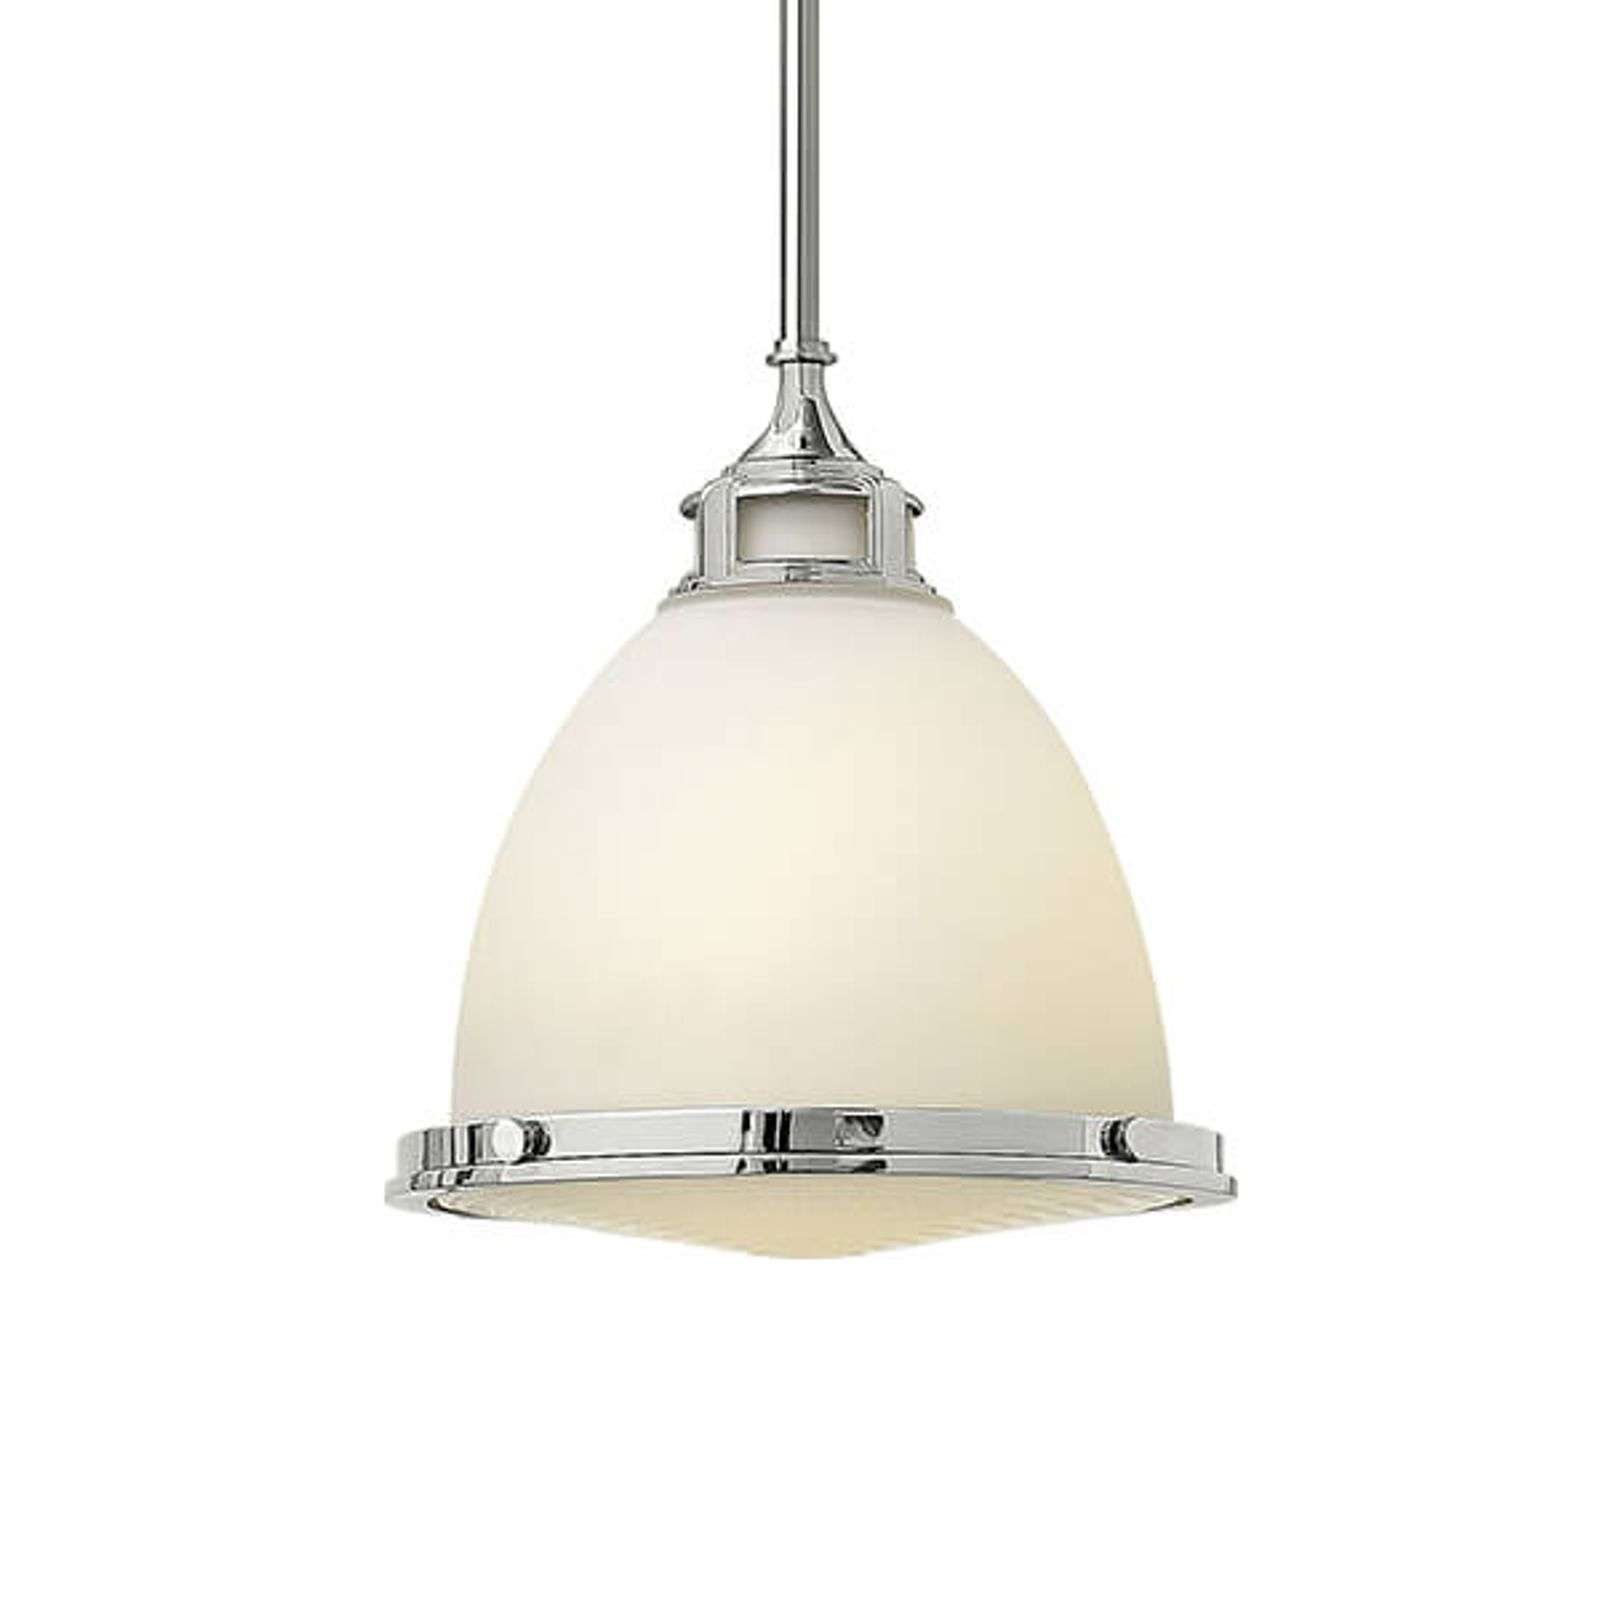 Amelia - belle suspension au design vintage